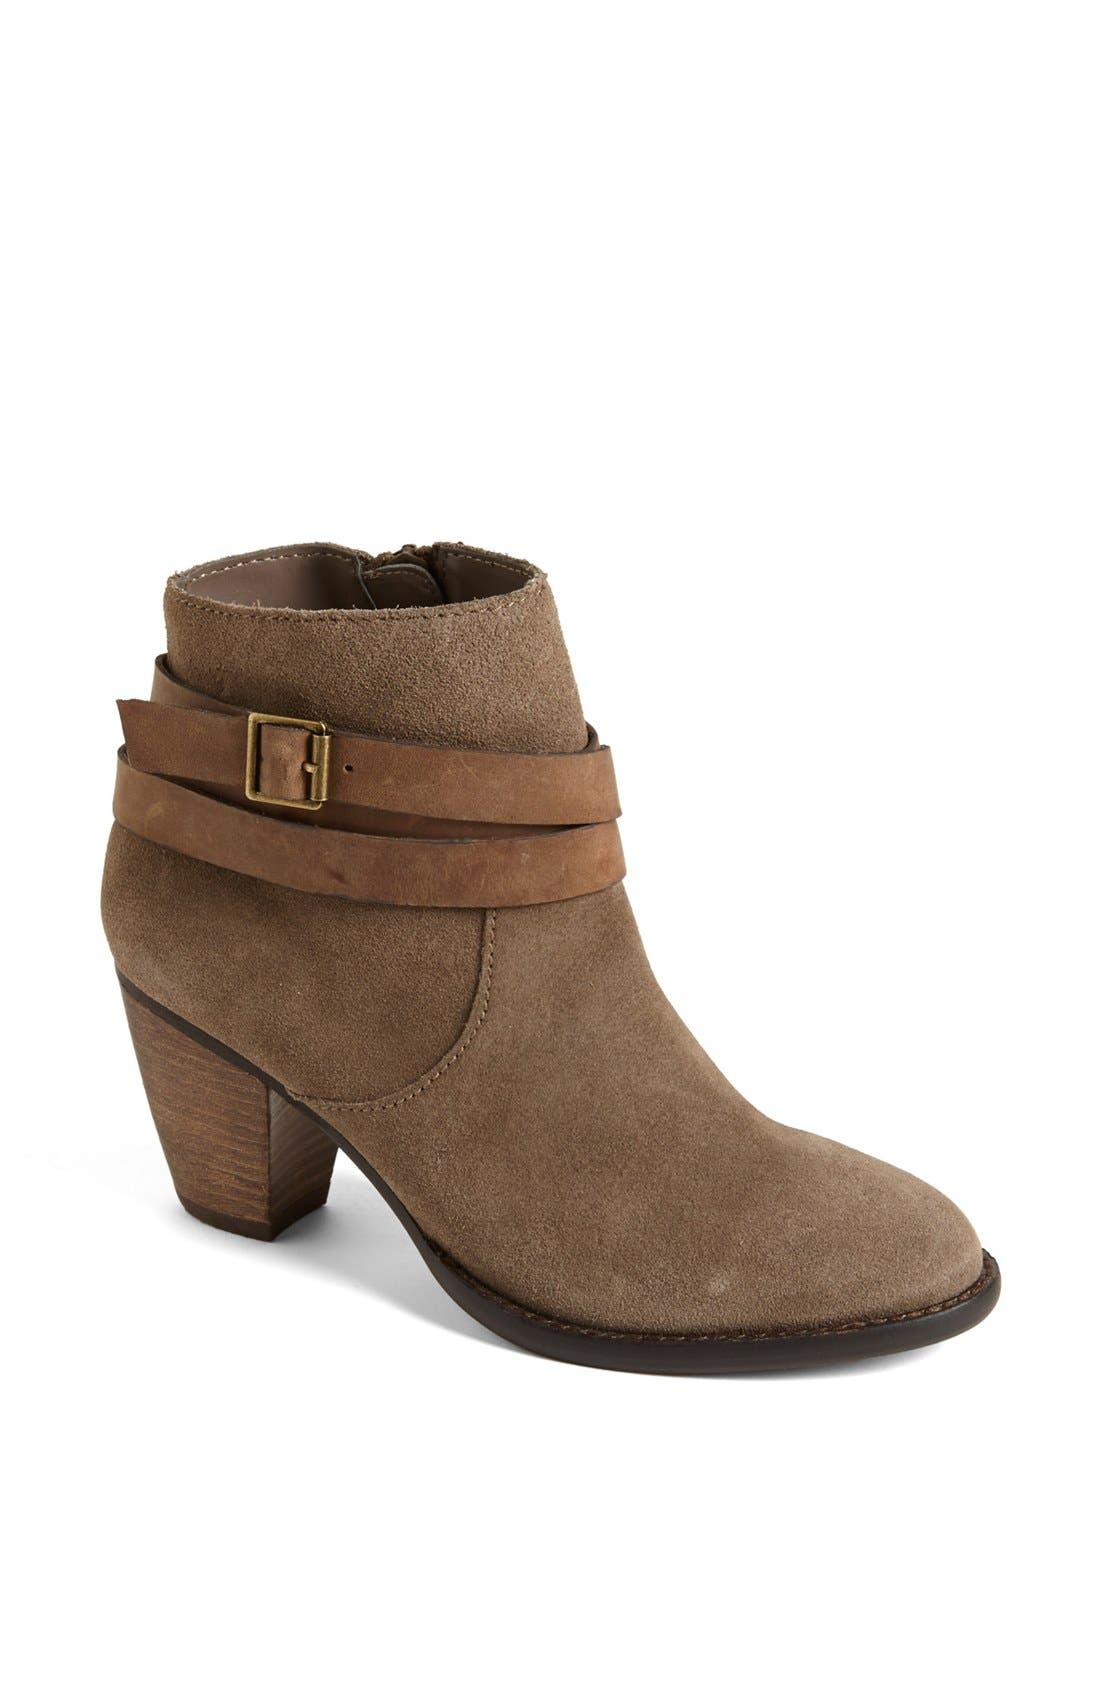 Alternate Image 1 Selected - Steve Madden 'Morrgan' Suede Bootie